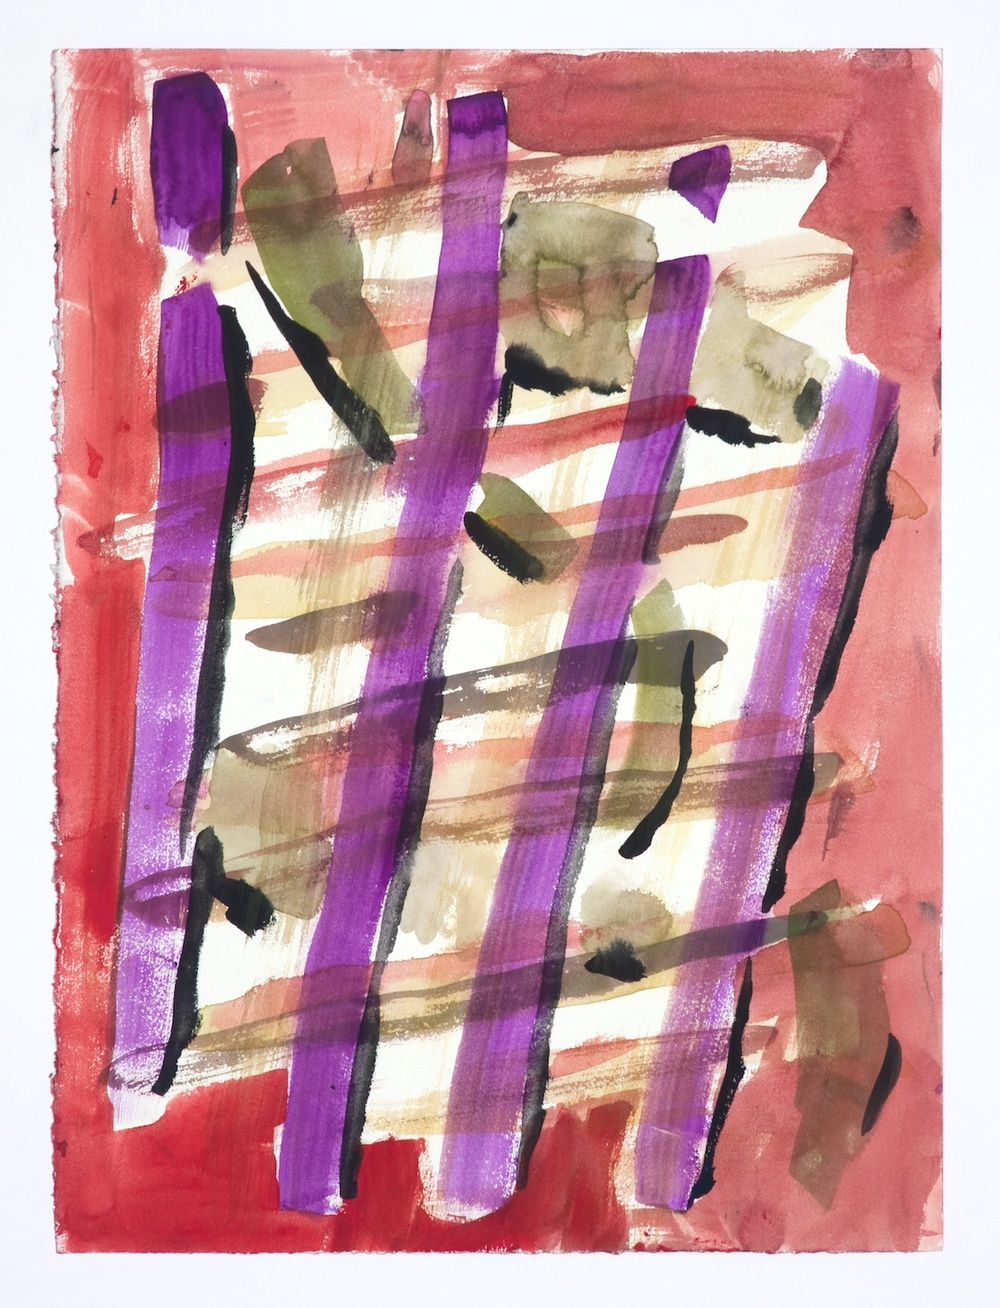 "Jon Pestoni Untitled 2009 Gouache on paper 15"" x 11 1/4"" JP084"